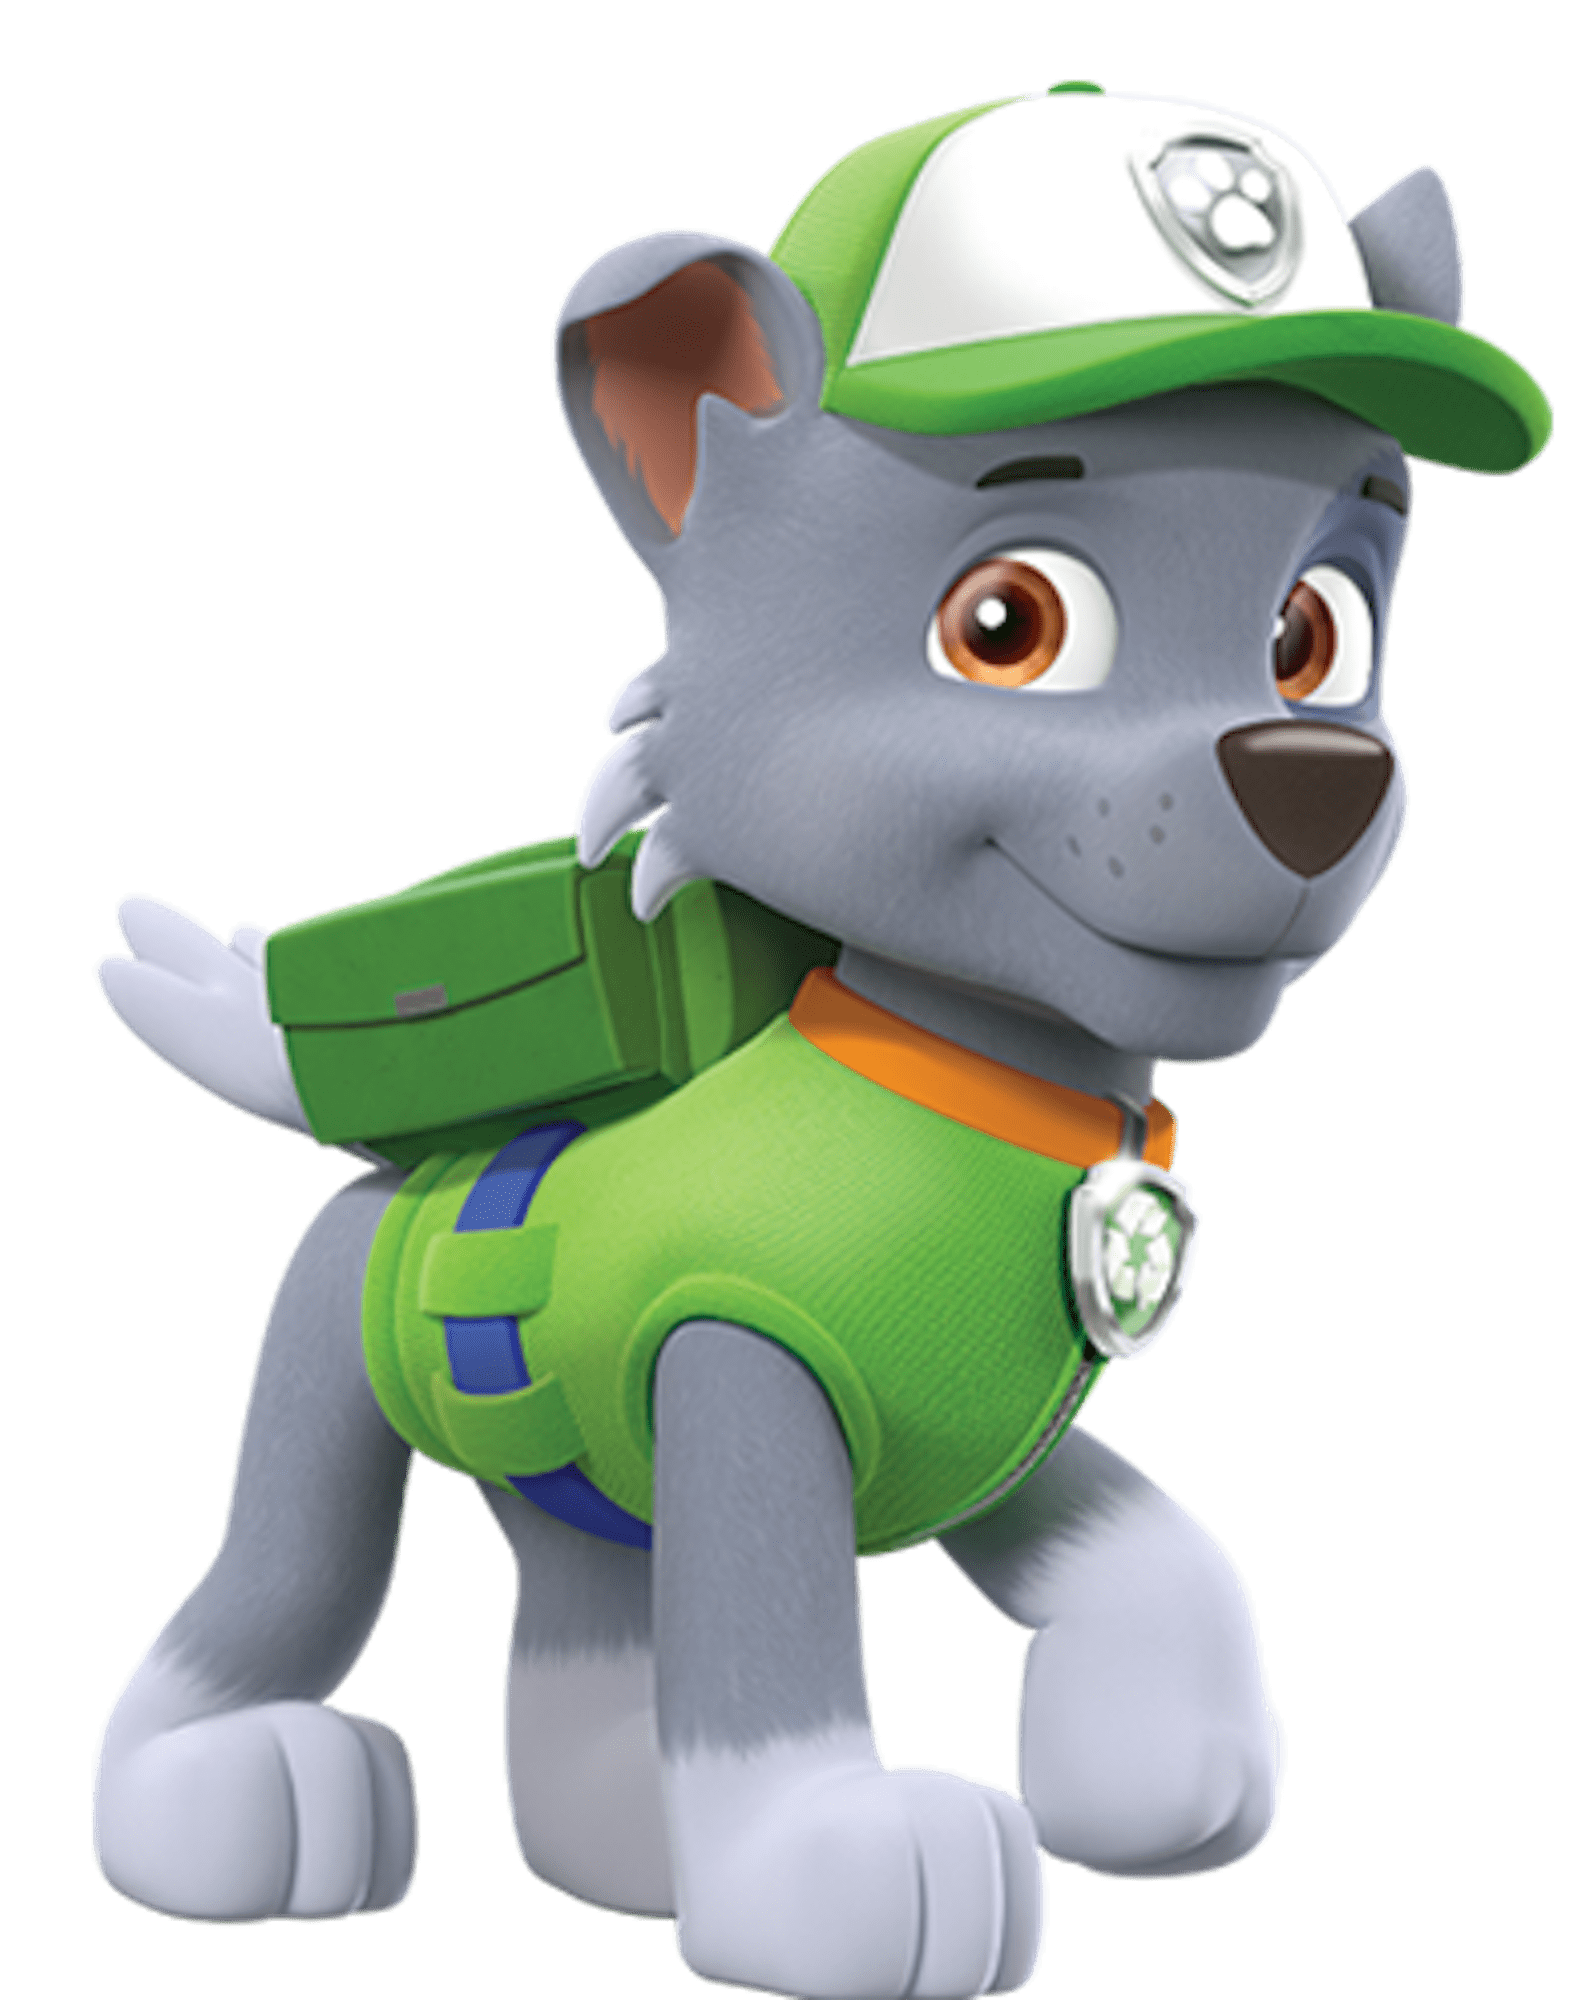 Paw patrol clip art png. Rocky clipart